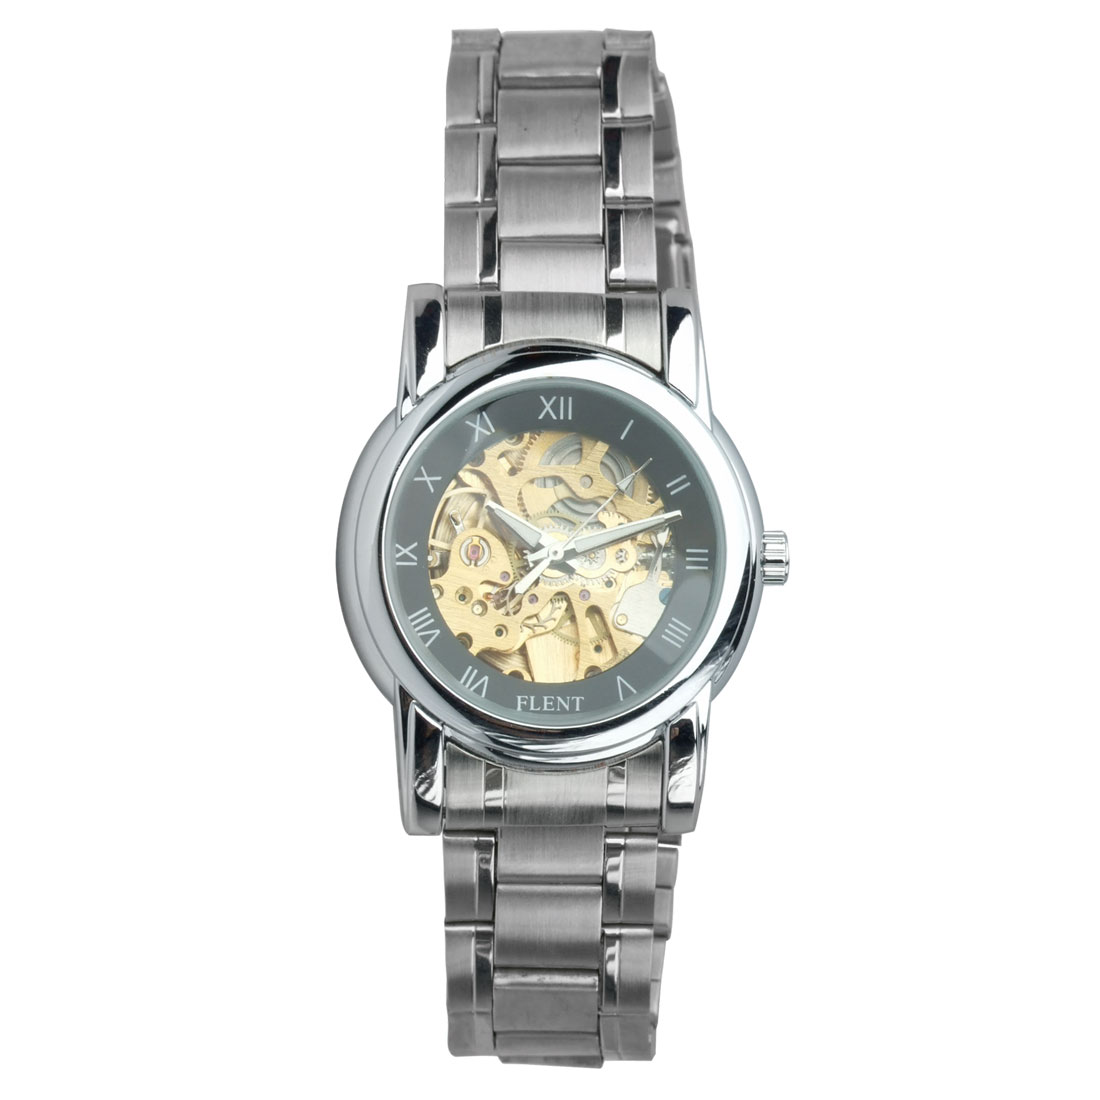 Fashion Jewelry Stylish Stainless Steel Mechanism Quartz Watch - Black Hand